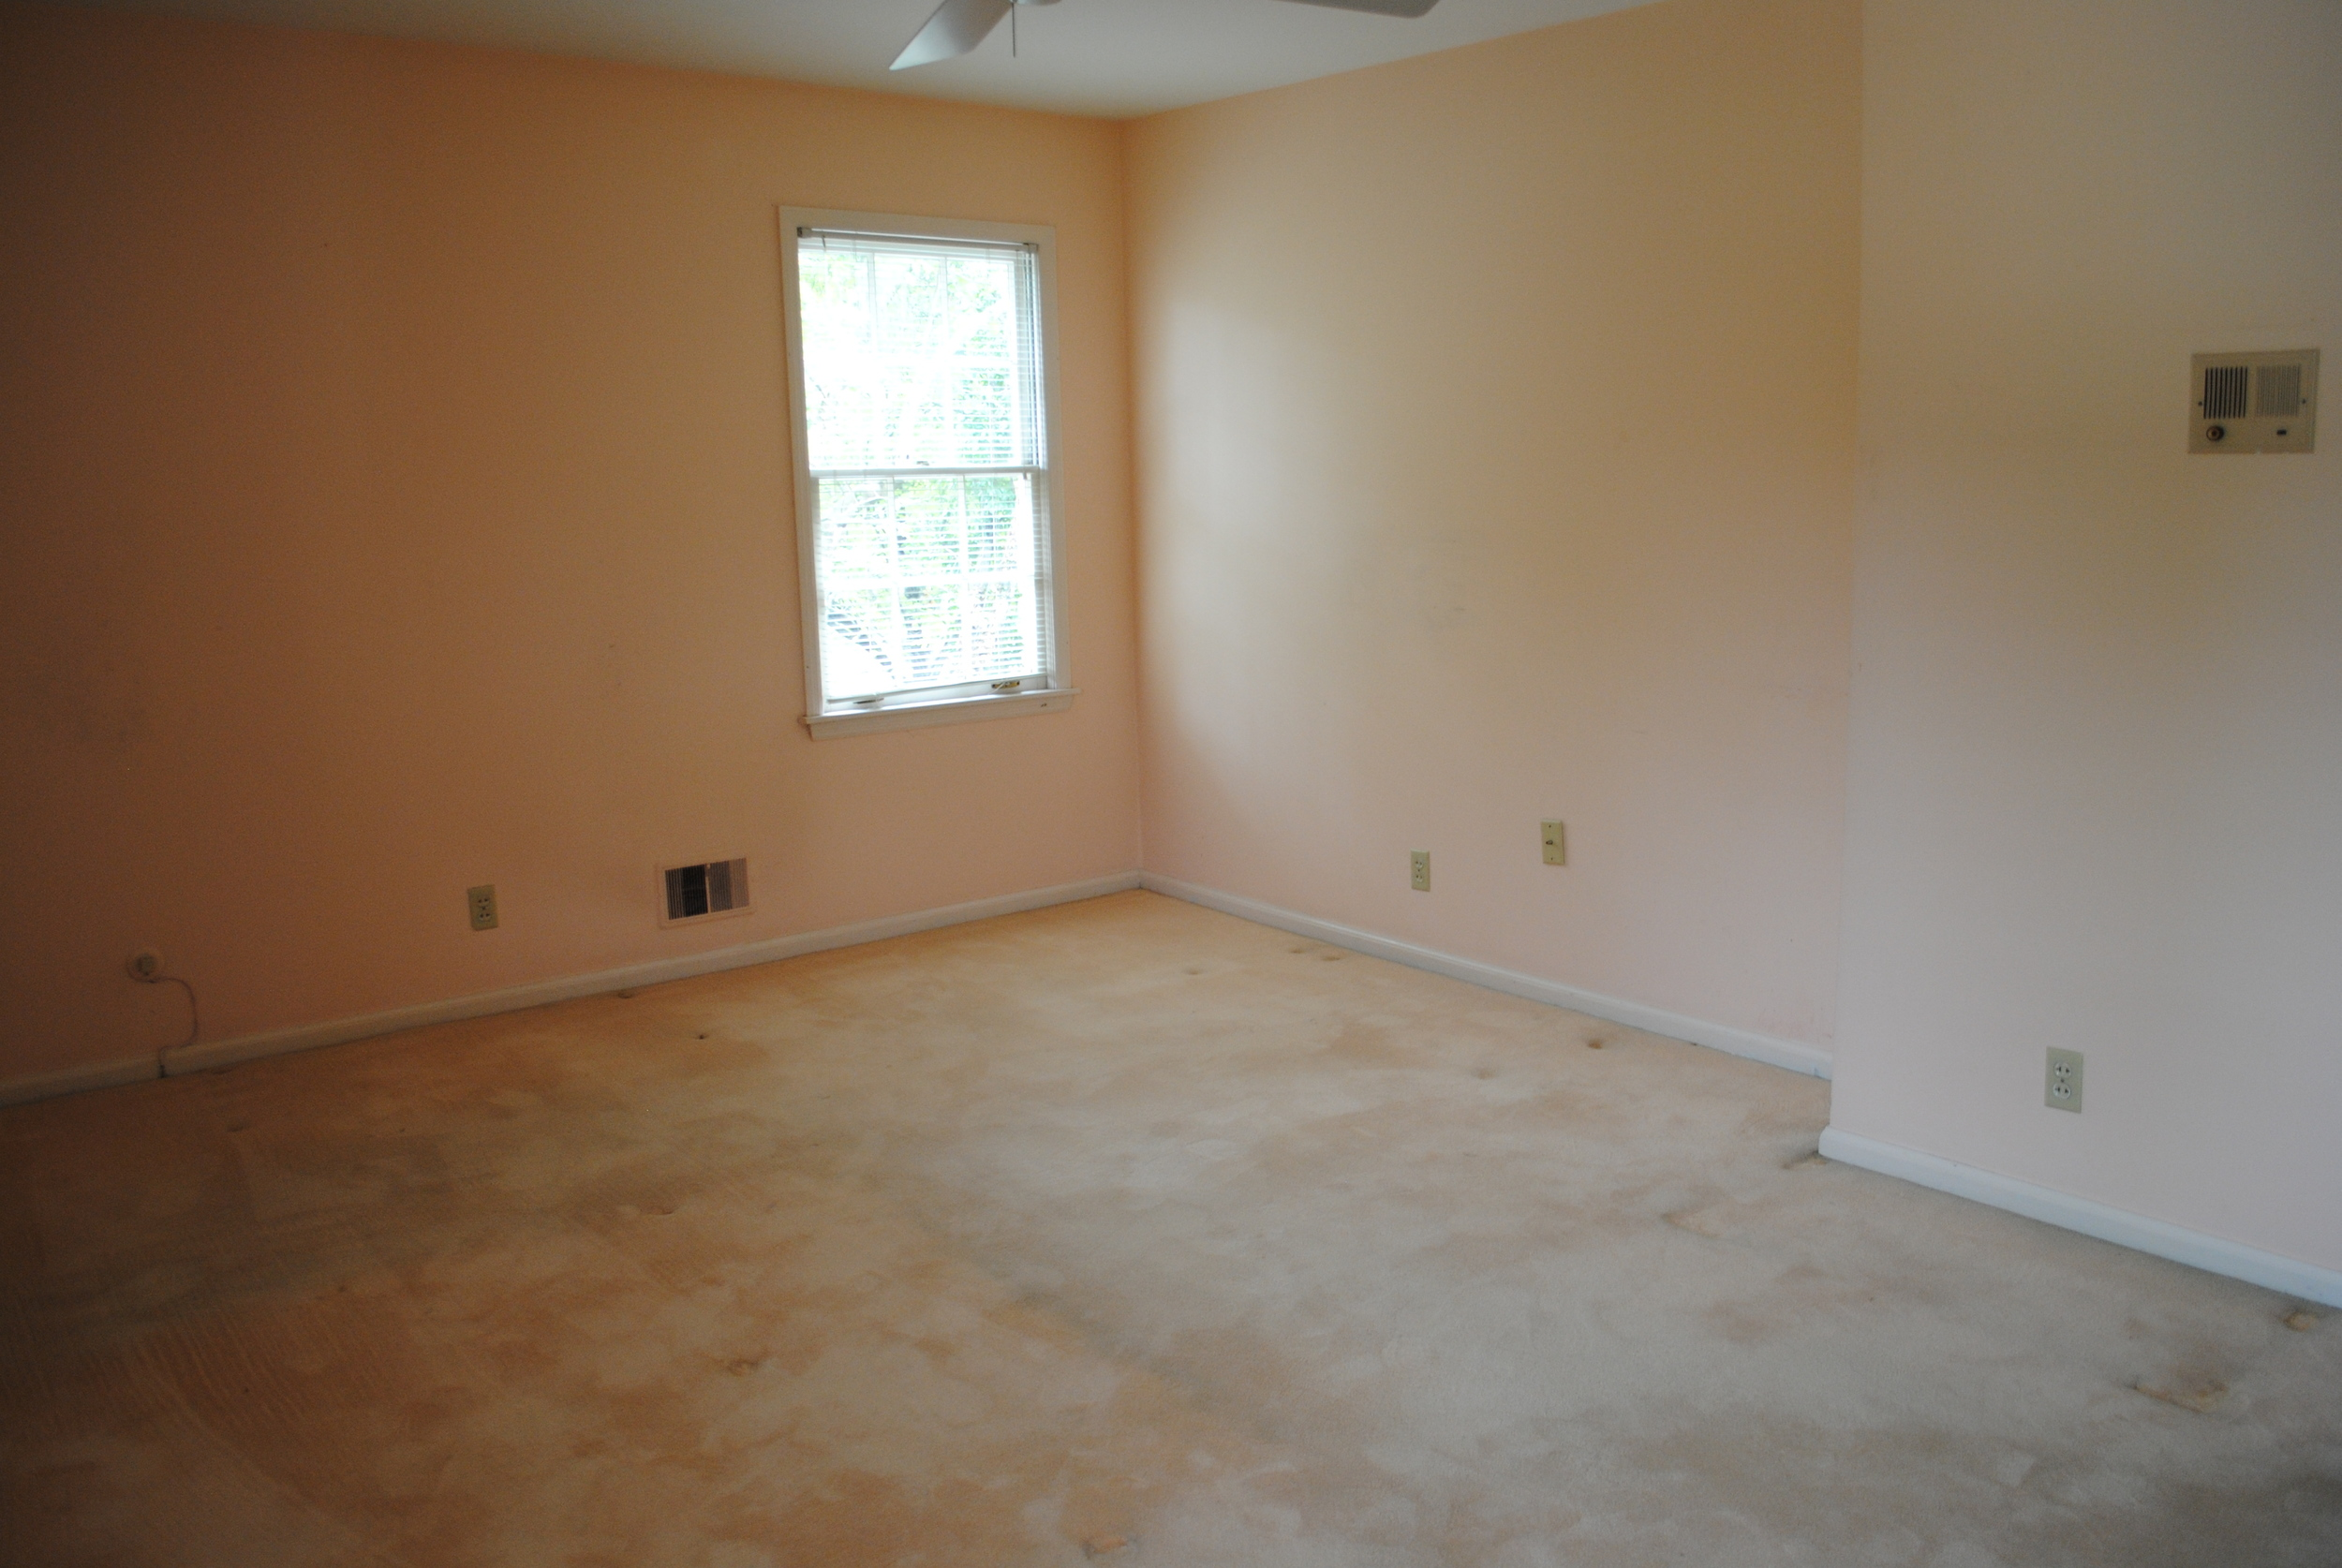 Existing Master Bedroom